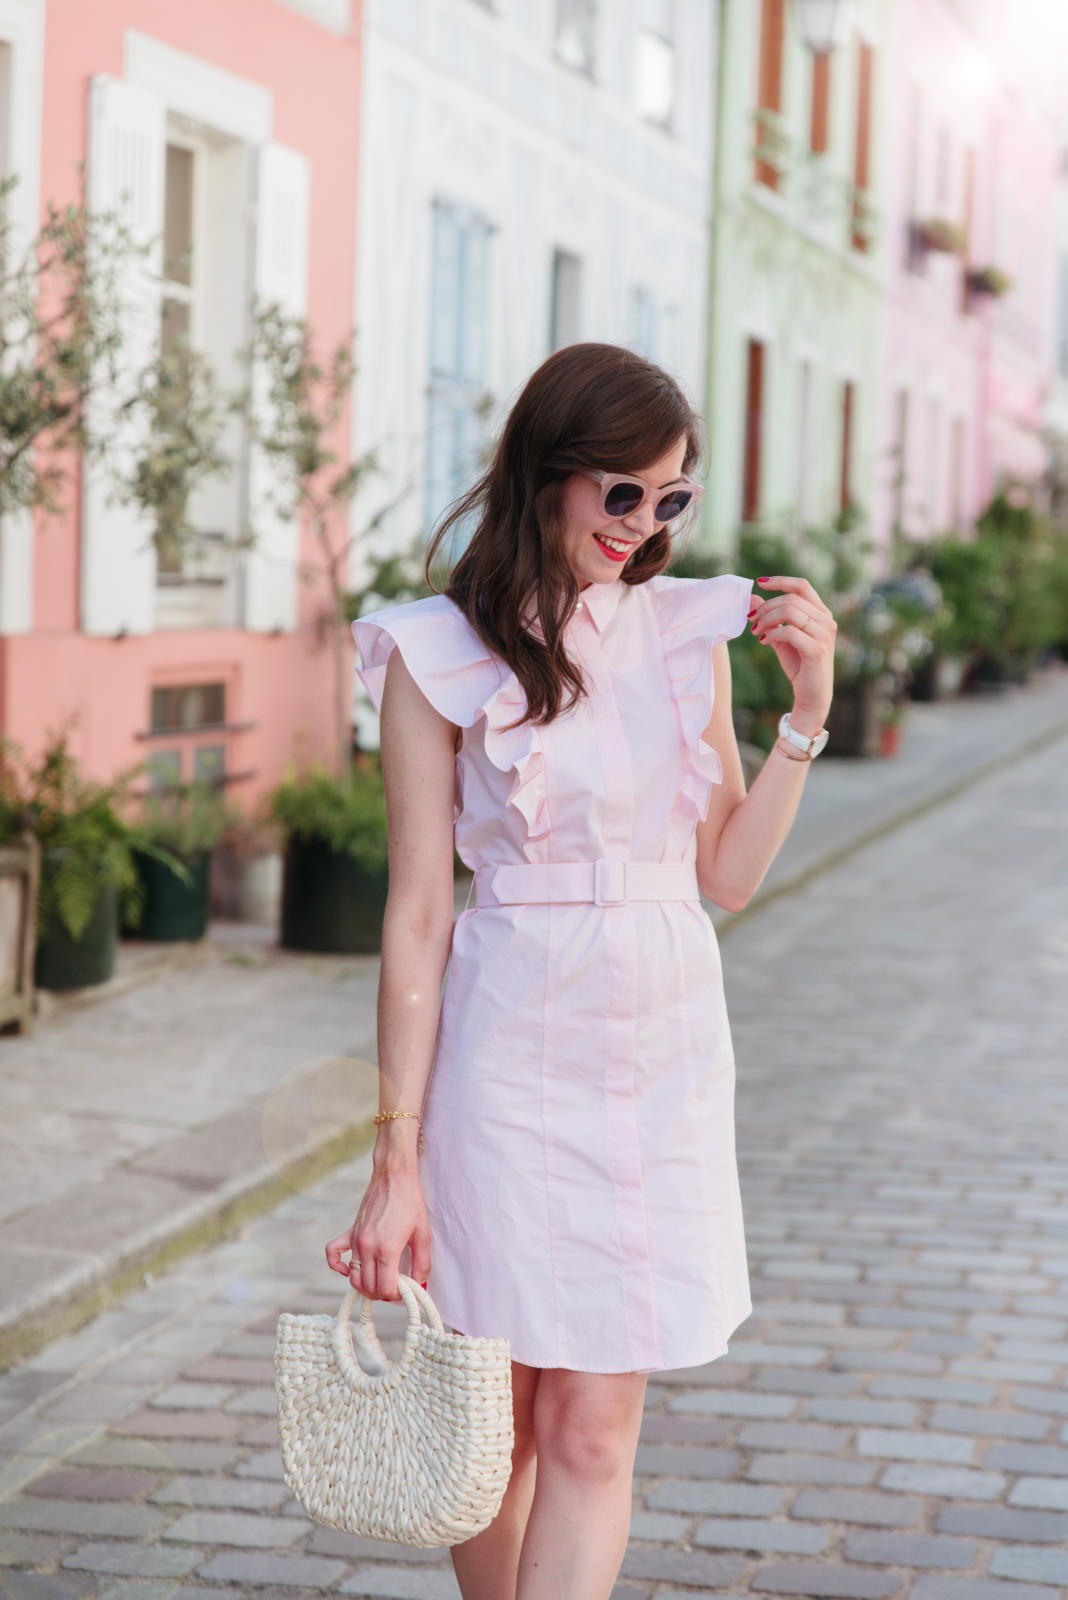 Blog-Mode-And-The-City-Looks-Claudie-Pierlot-robe-rose-volants-11